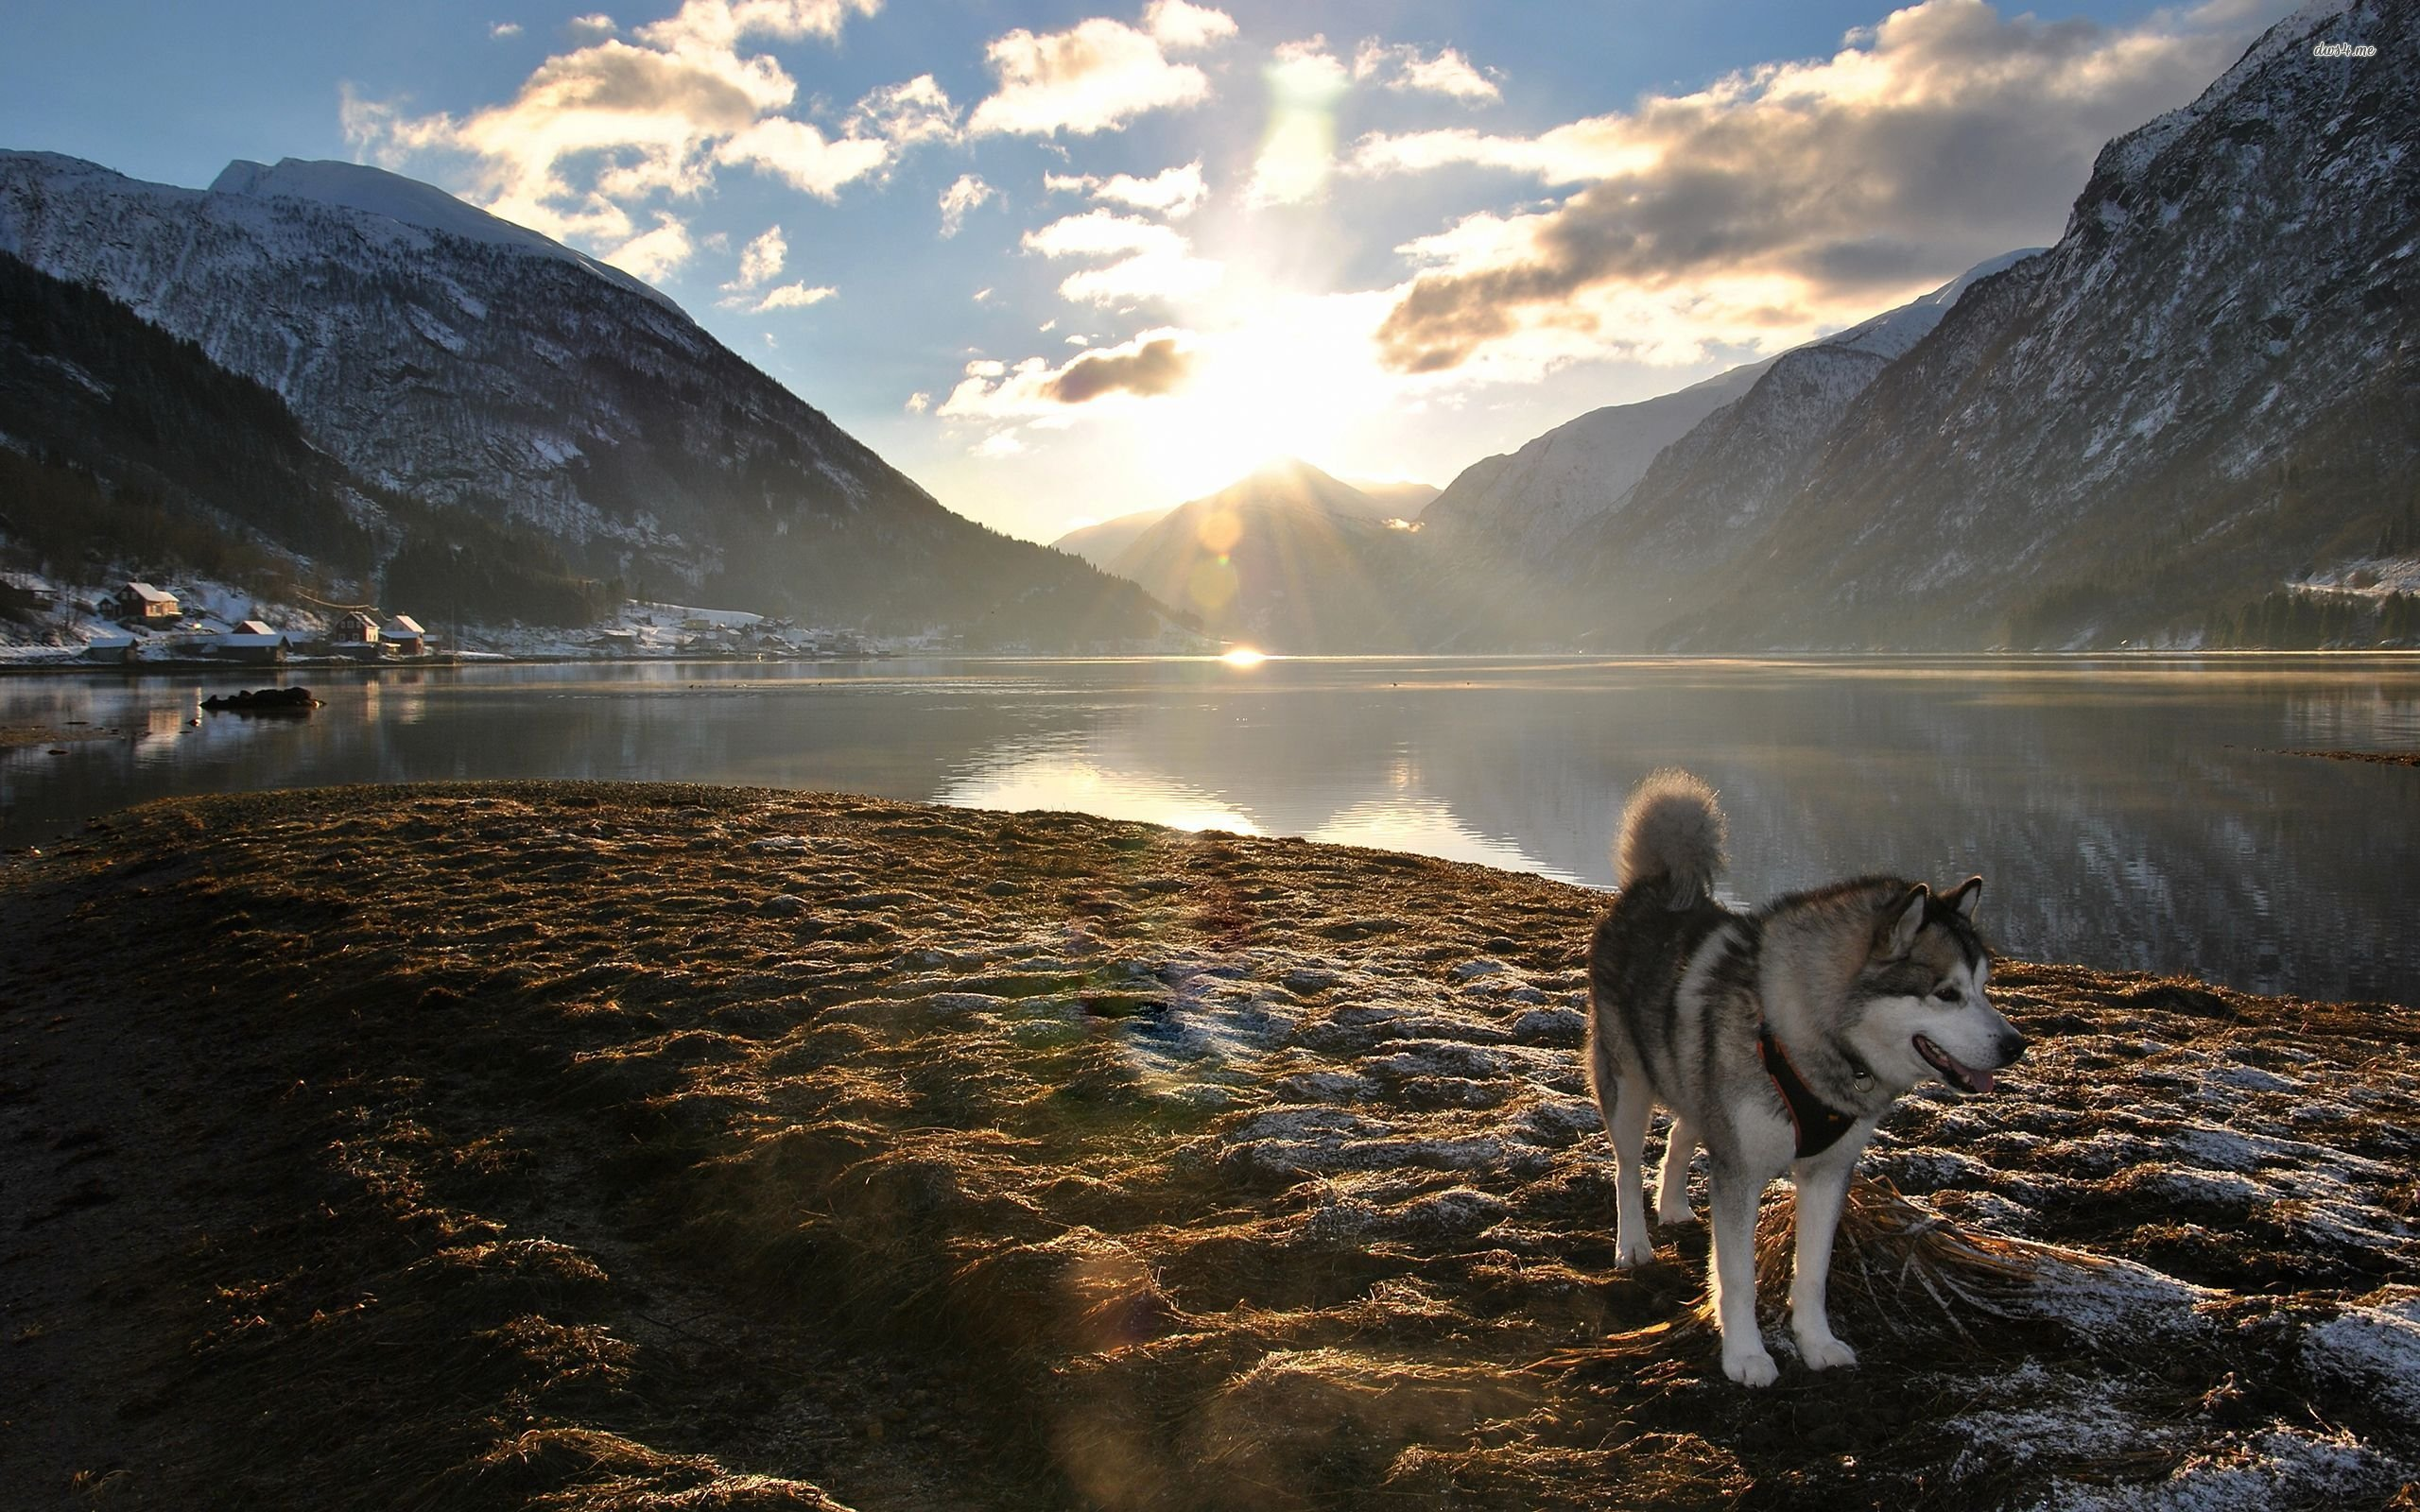 Husky 4k Wallpapers For Your Desktop Or Mobile Screen Free And Easy To Download